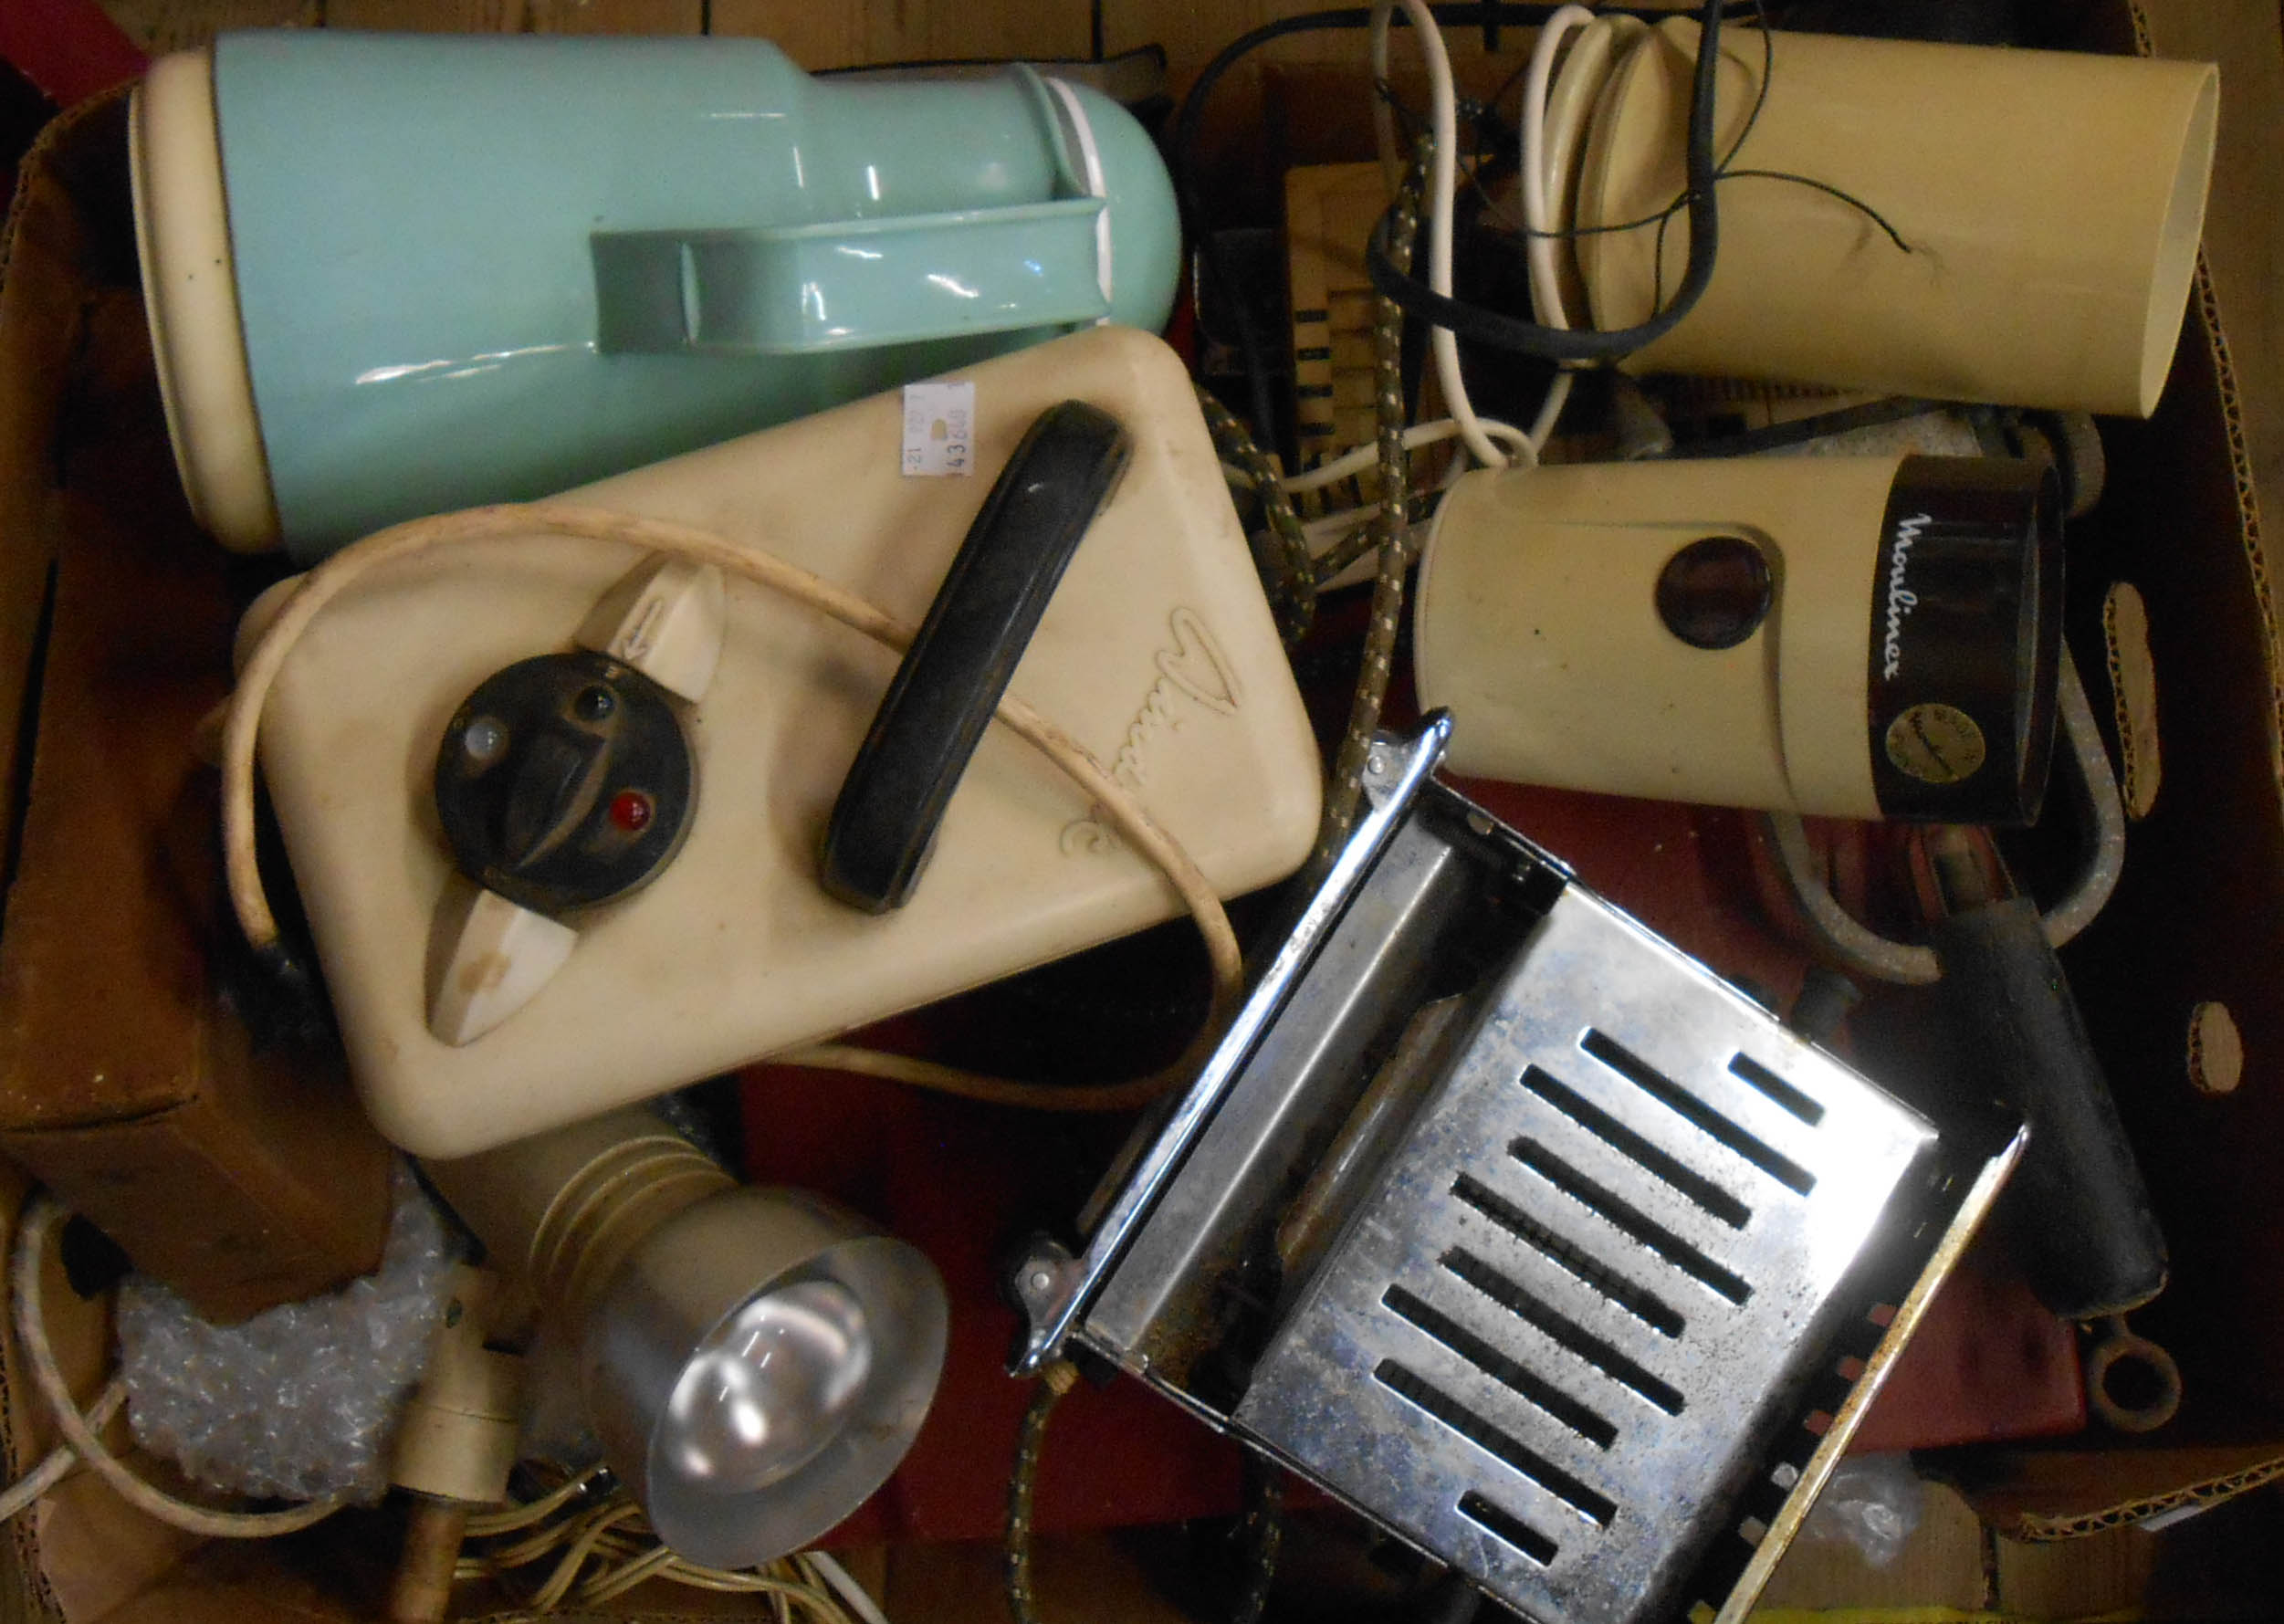 A box containing assorted collectable items including vintage electric razor, battery tester, tape